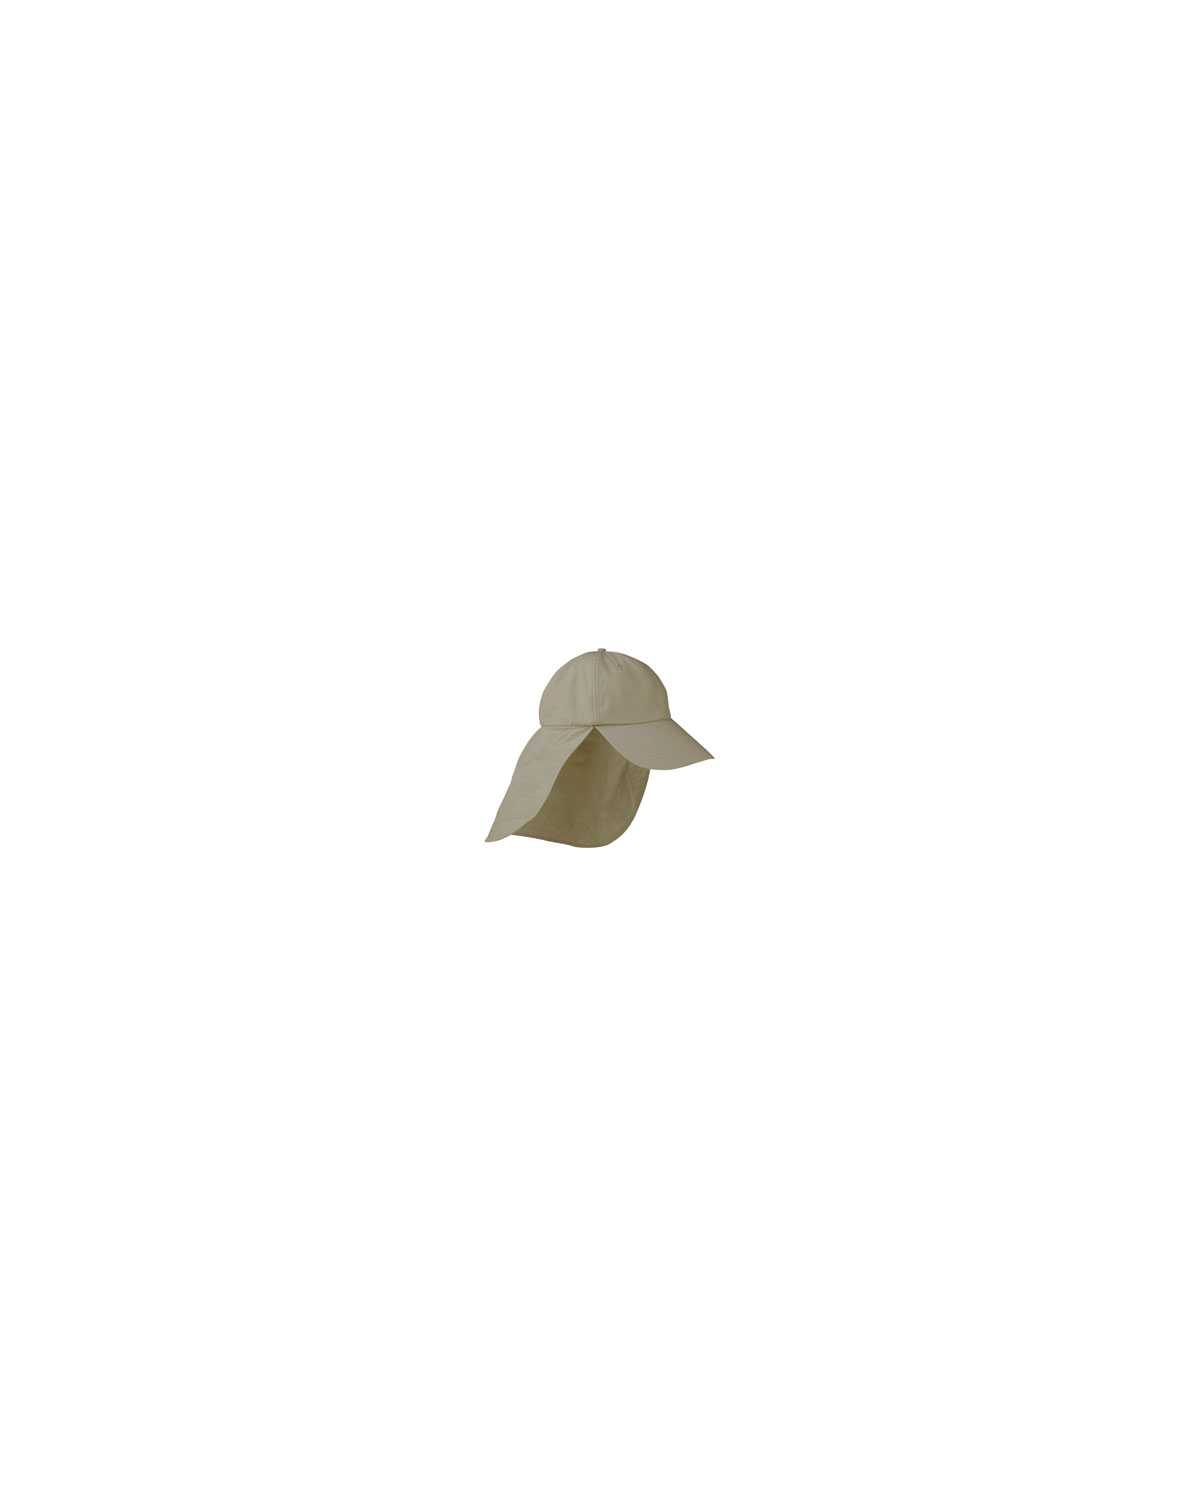 9fd53243b9e Head Wear Caps Adams EOM101 Extreme Outdoor Cap. eom101 22  View larger.  Previous. eom101 22  ...